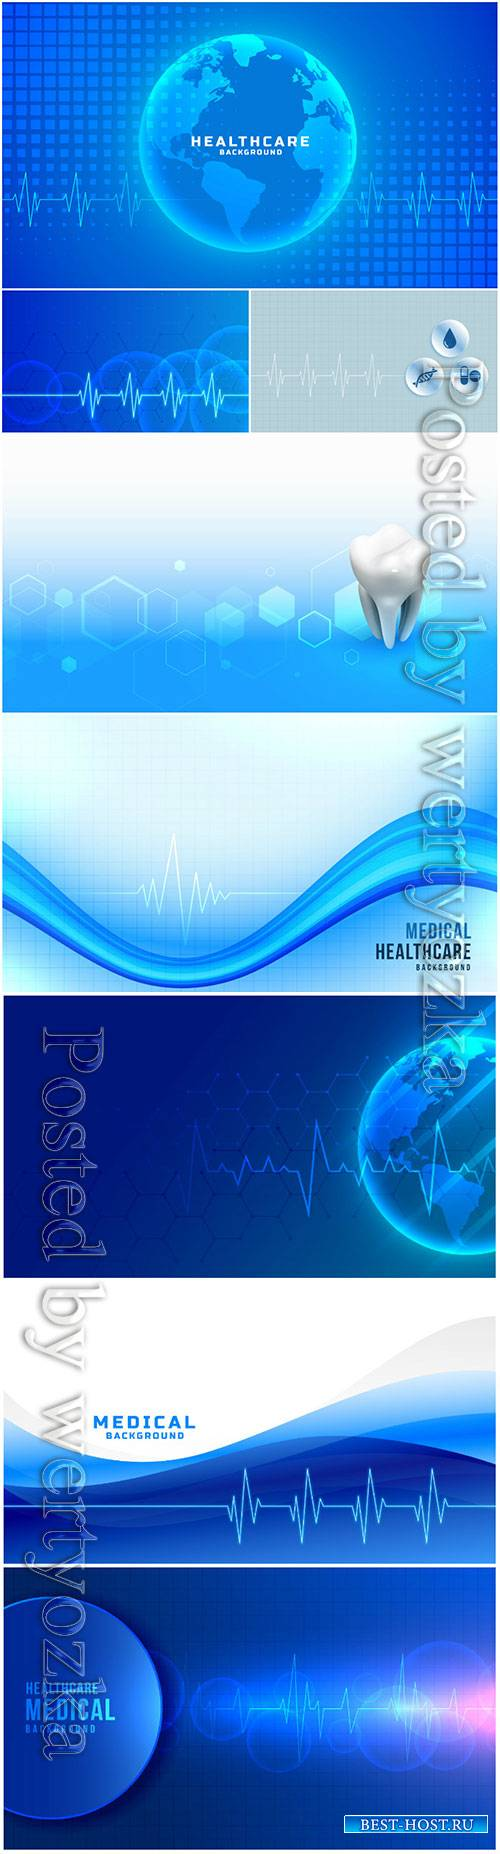 Global healthcare medical vector background blue color theme